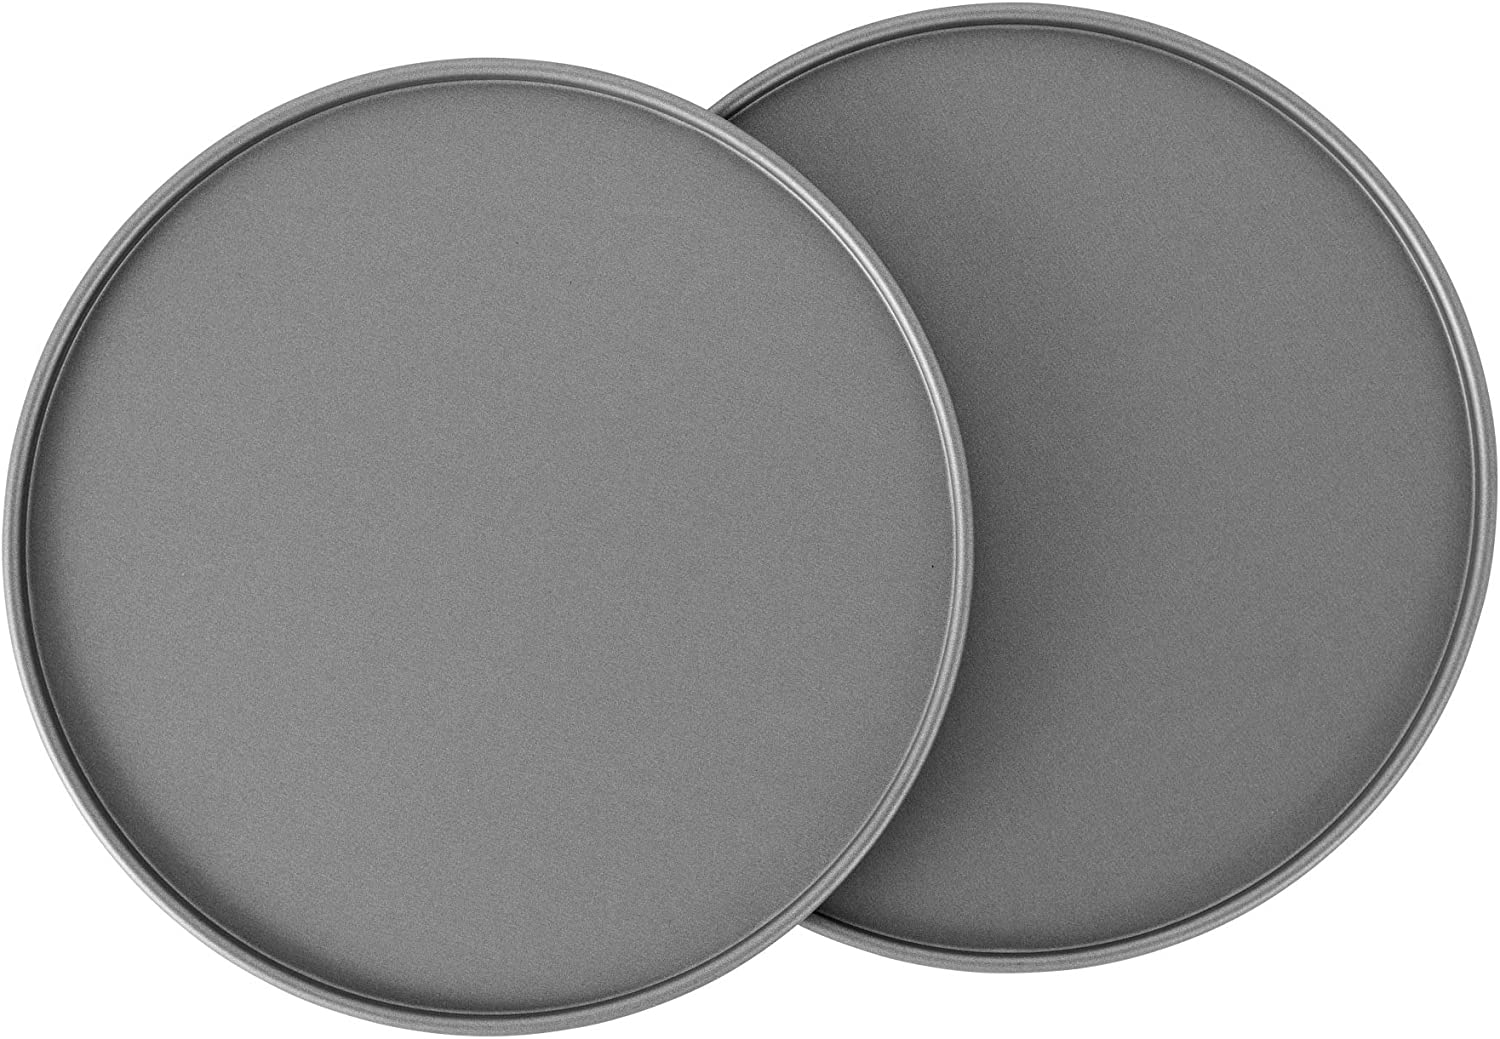 G & S Metal Products Company OvenStuff Non-Stick Toaster Oven Pizza Pan, Set of Two, Gray